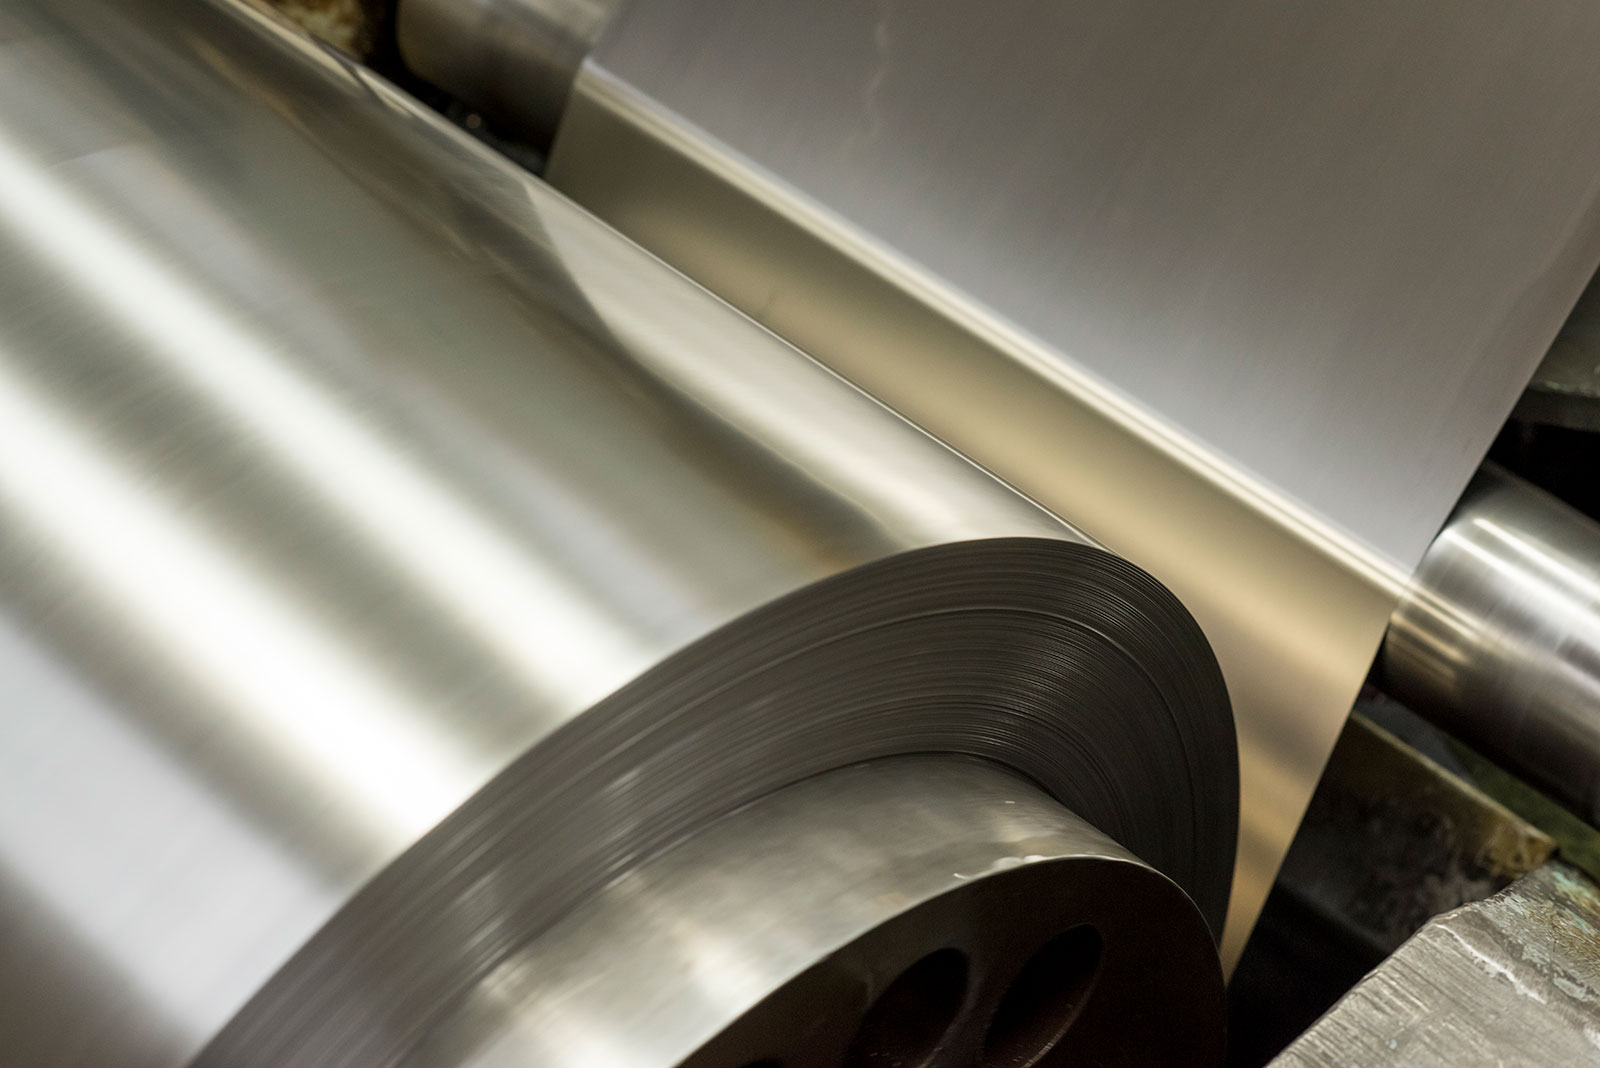 Stainless Steel & Its Alloys